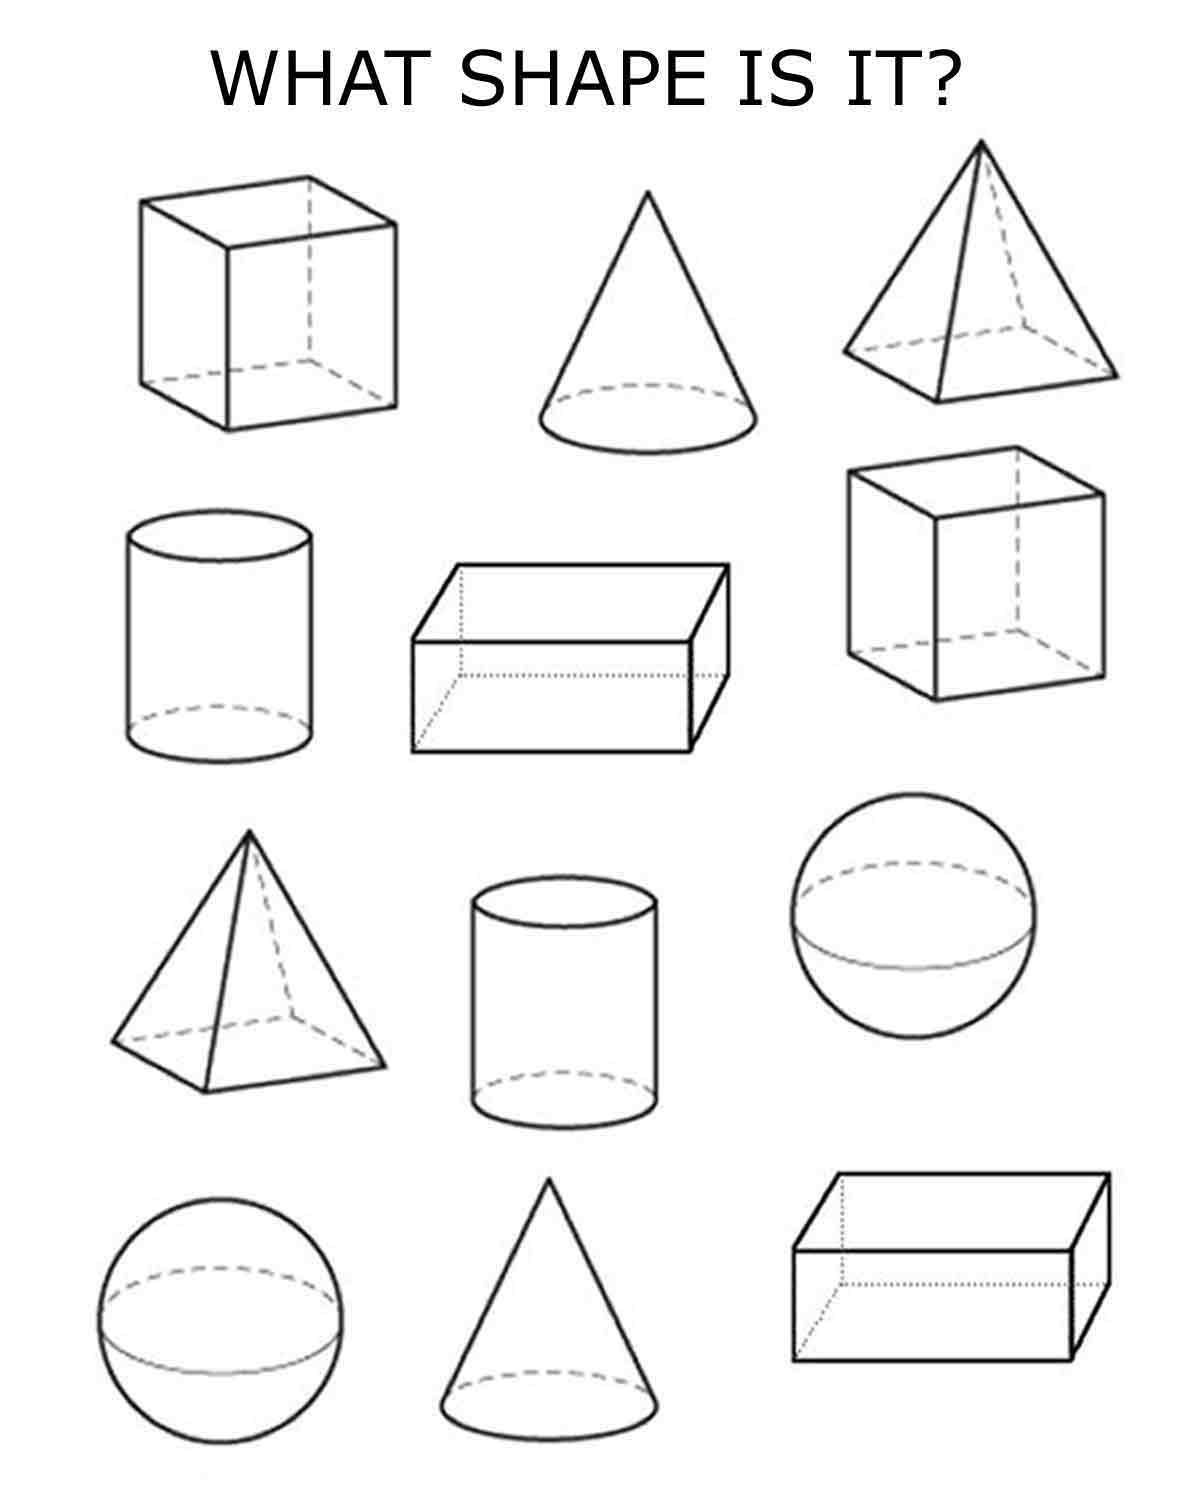 3D SHAPES | Homeschooling in 2018 | Pinterest | 3d shapes ...